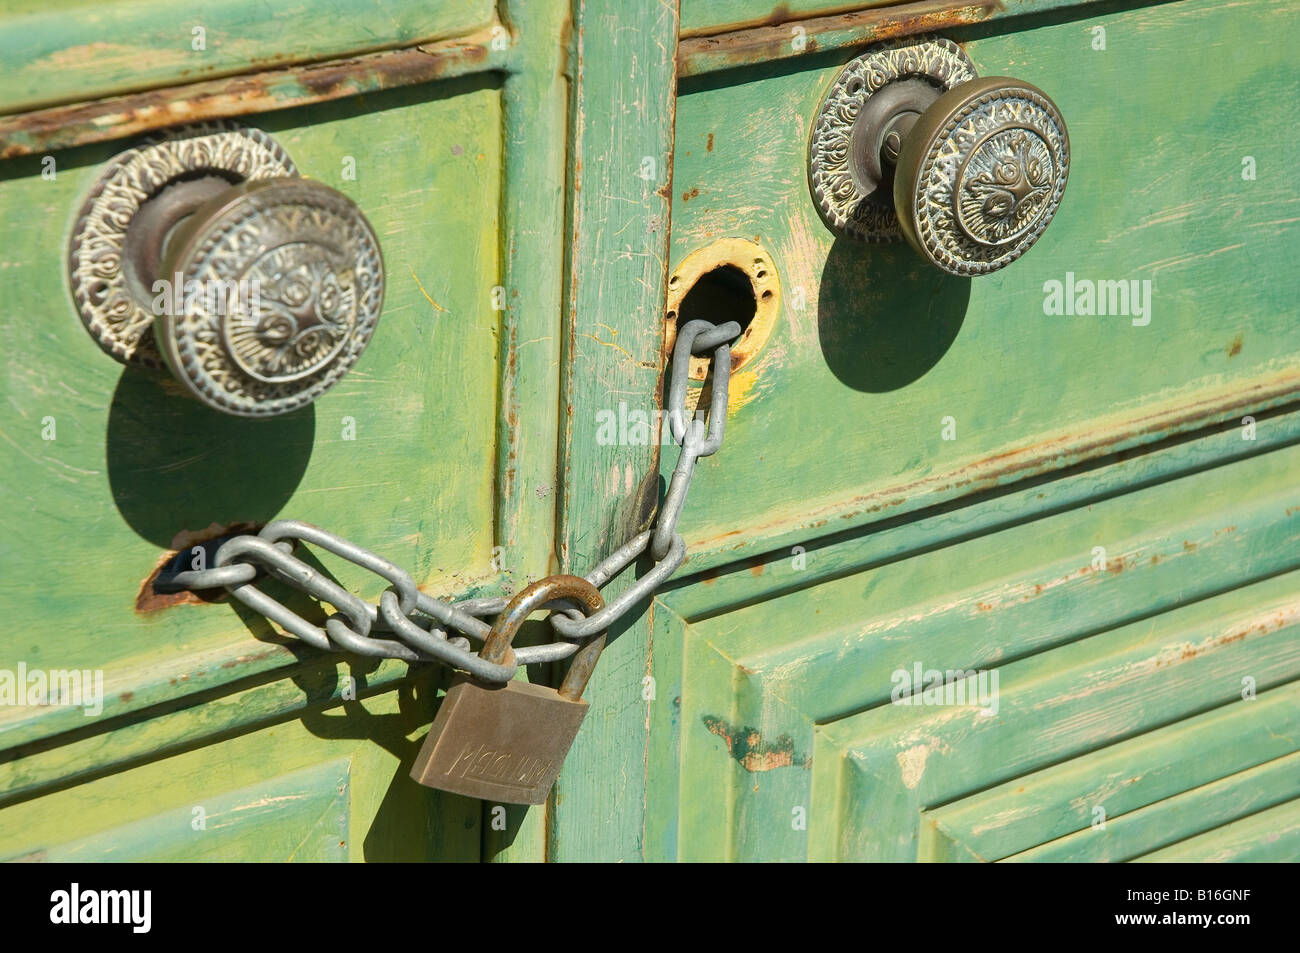 Painted Chain Stockfotos & Painted Chain Bilder - Seite 2 - Alamy